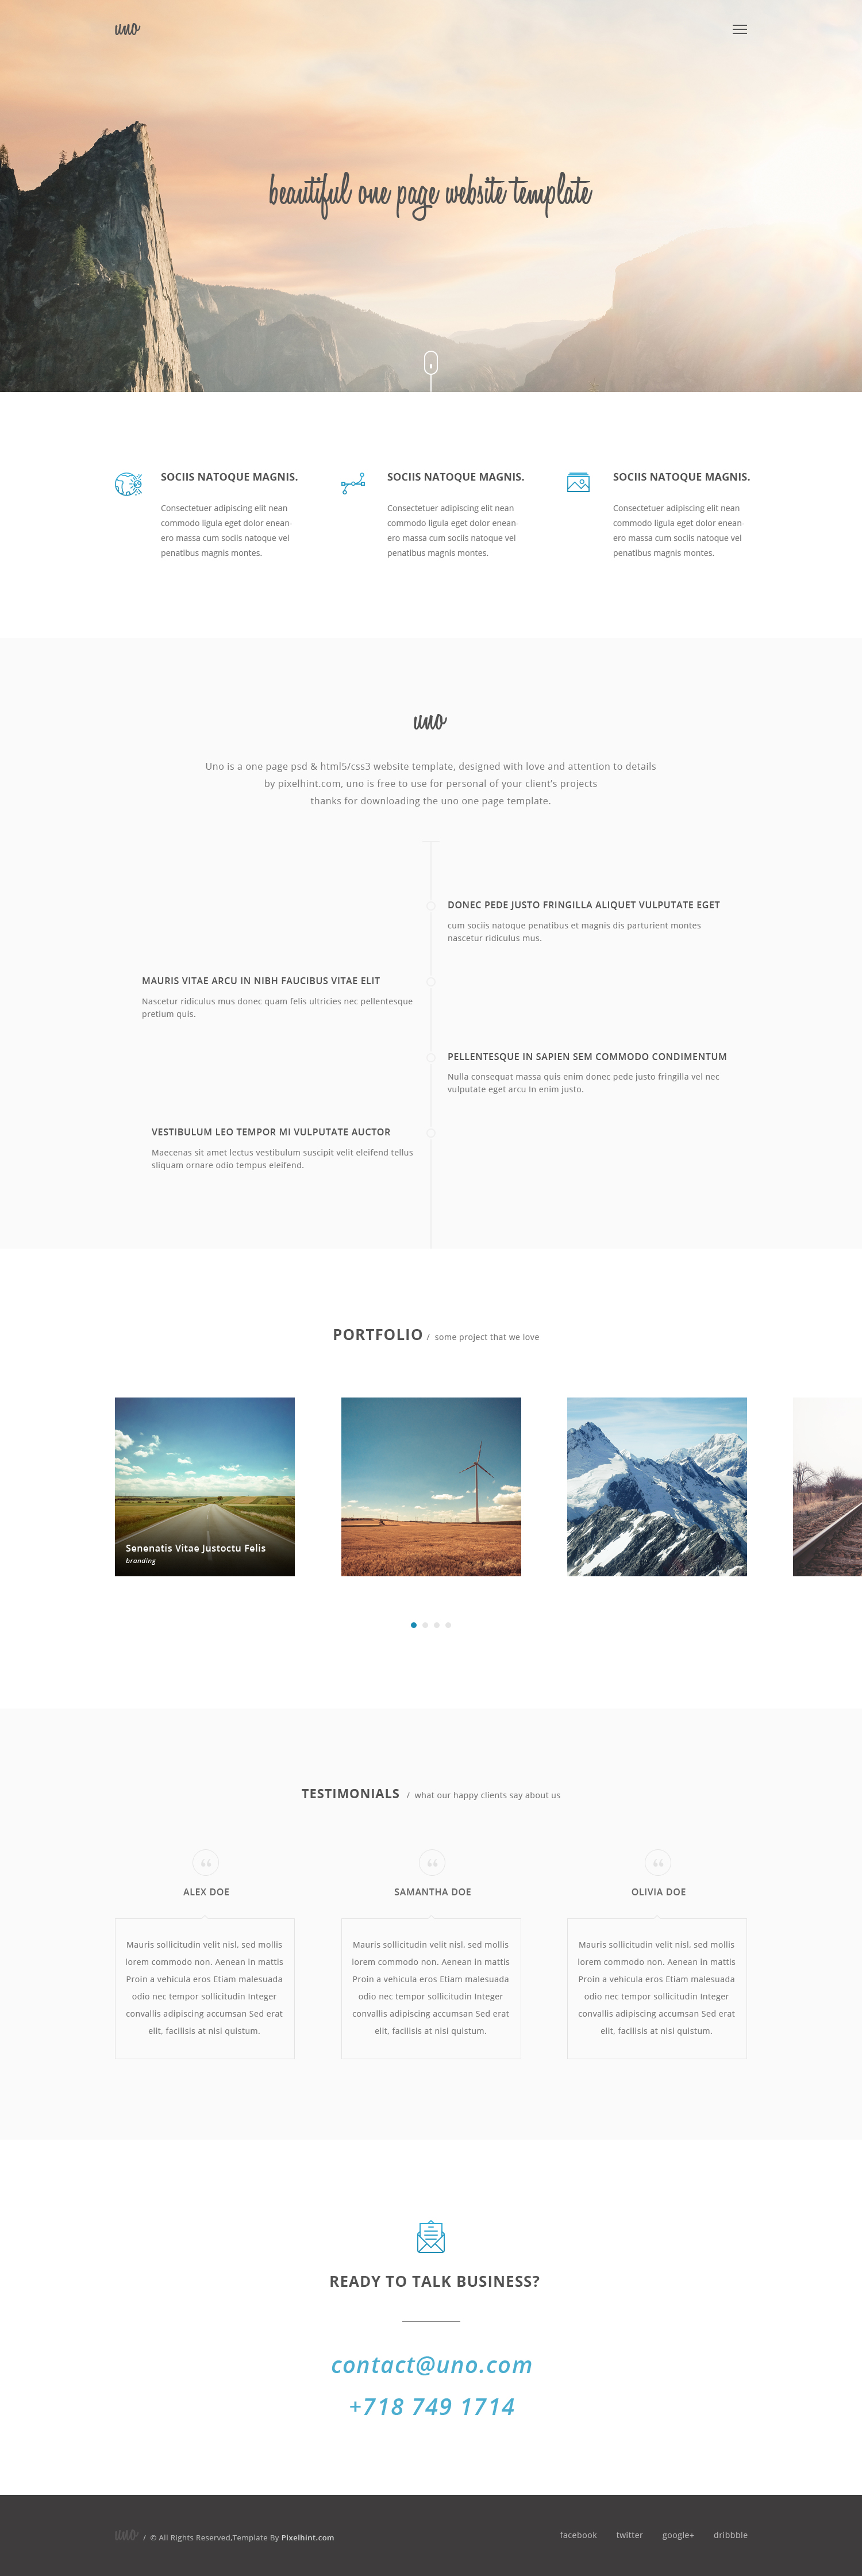 free one page html5 css3 template http pixelhint com uno html5 one